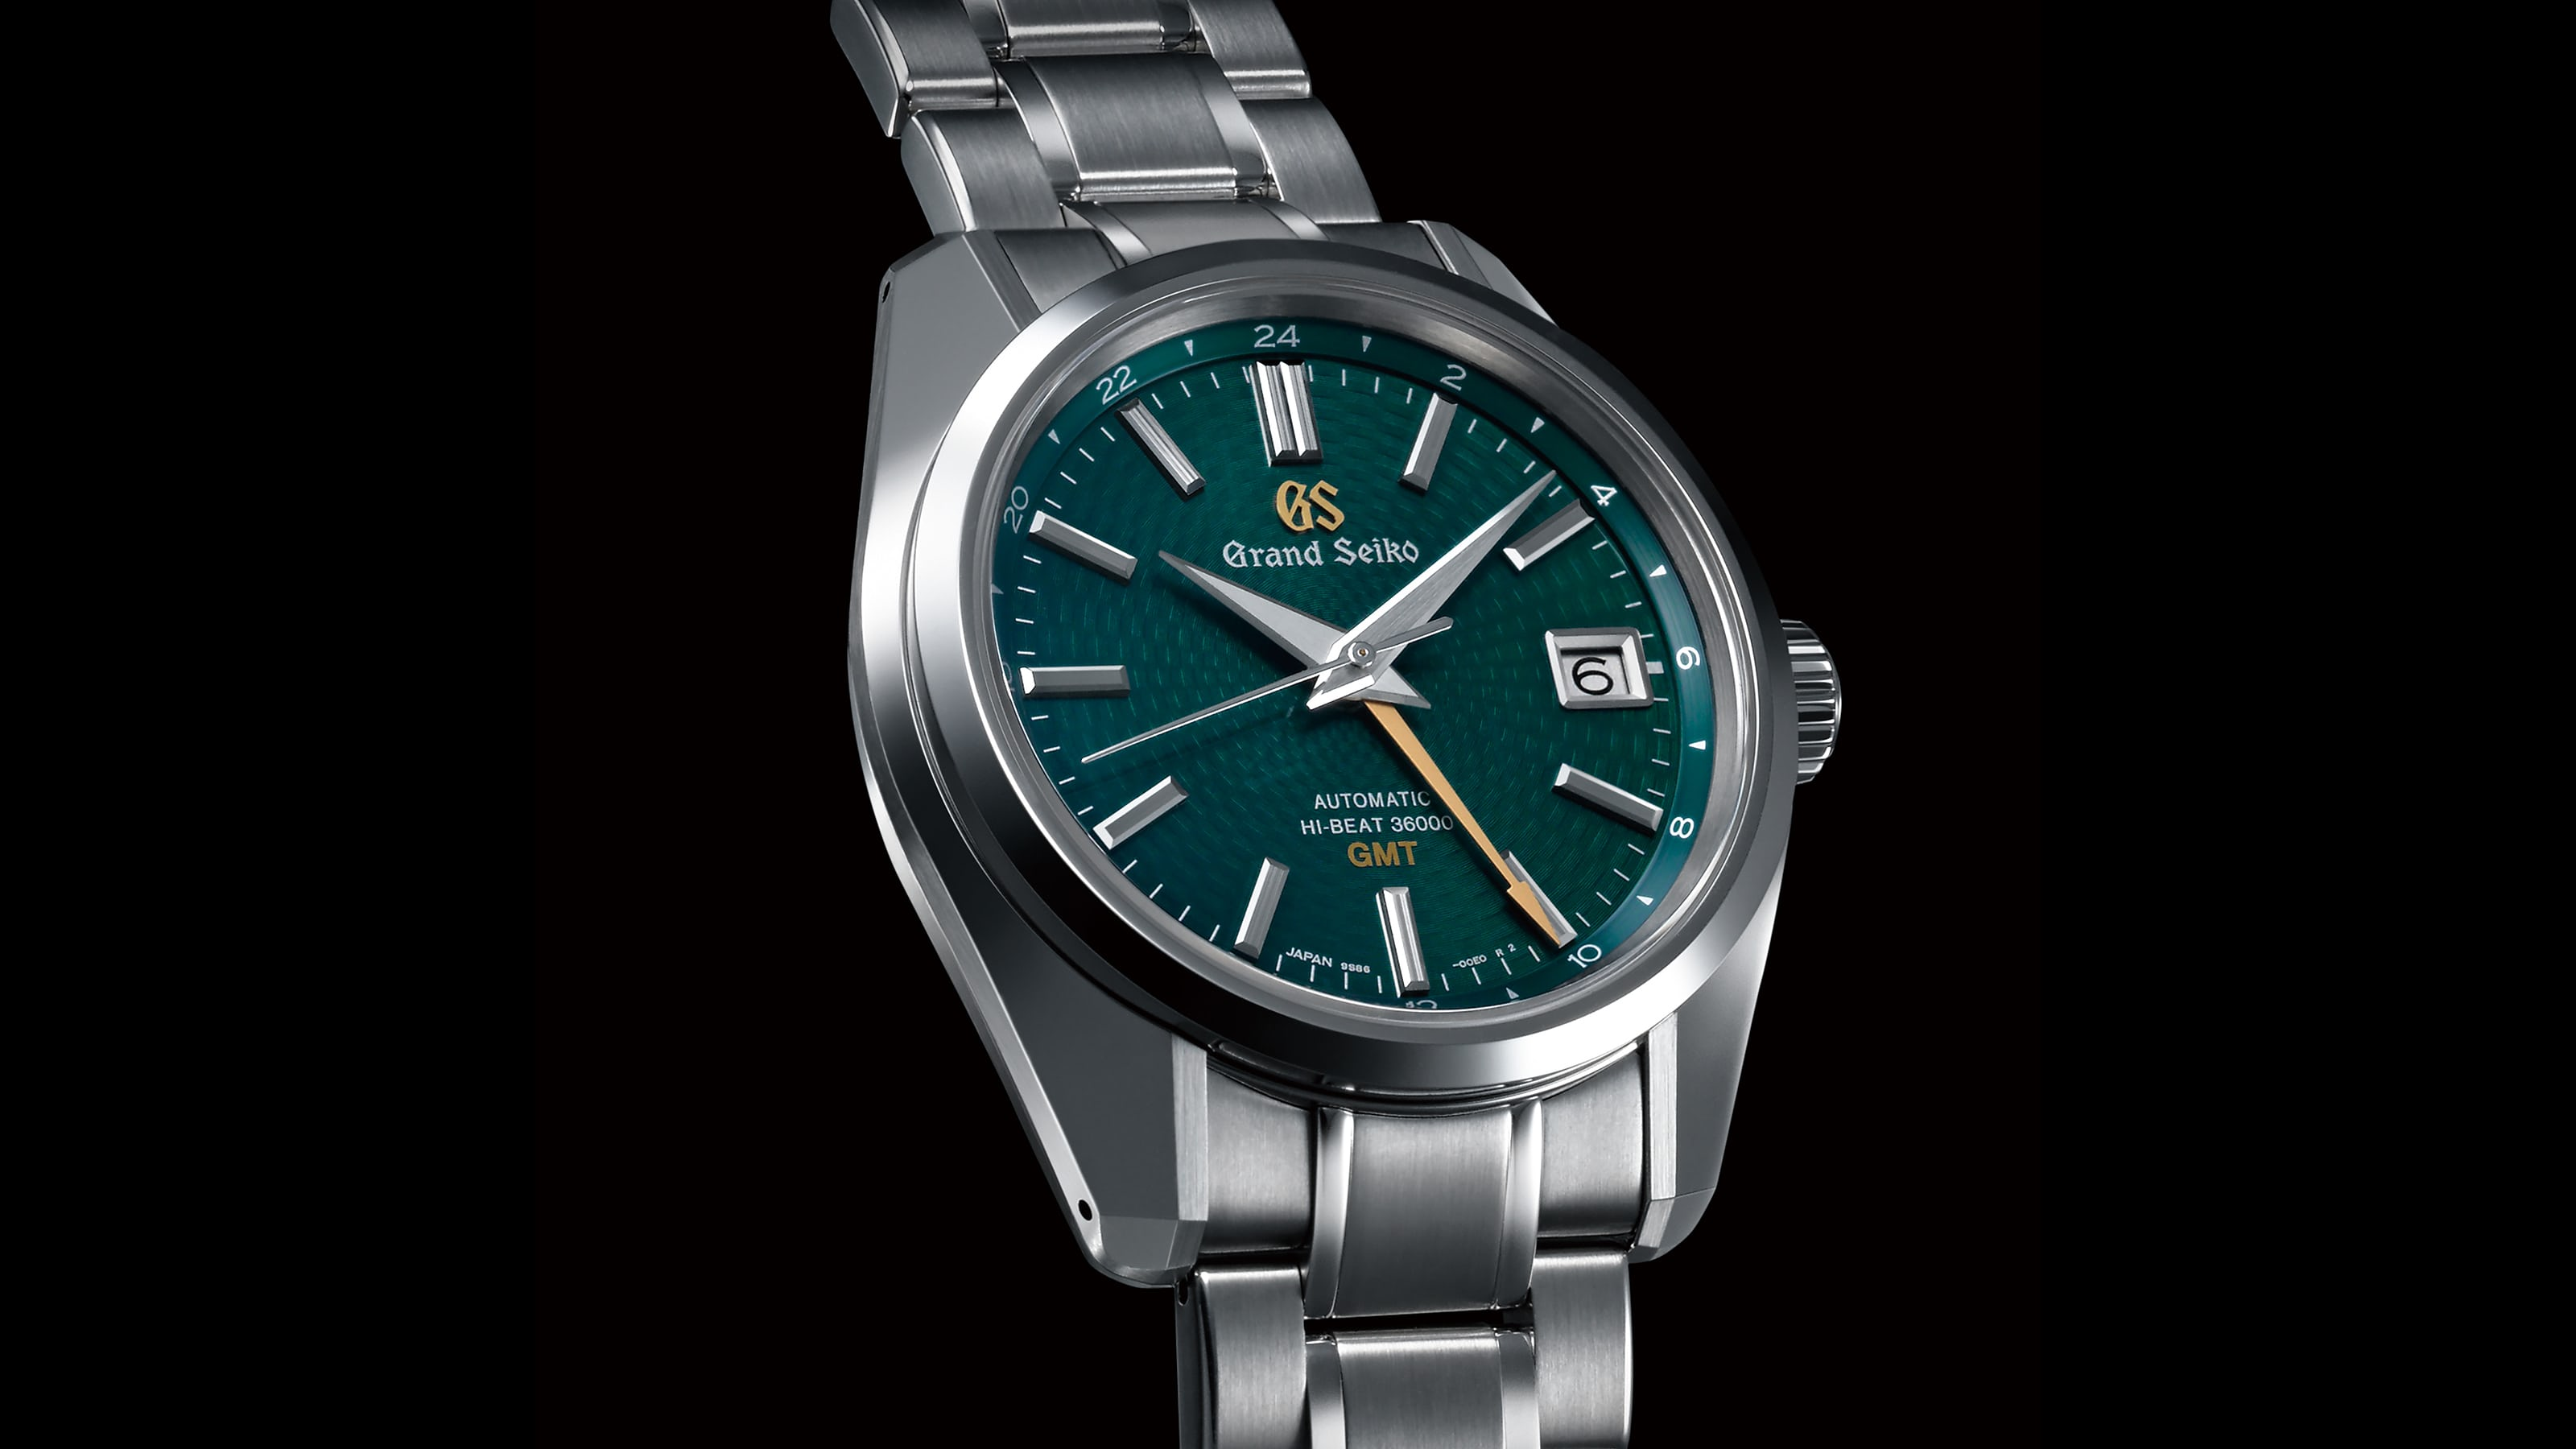 gmt omega limited bnib sold watches looking grand for threads img thanks forums seiko